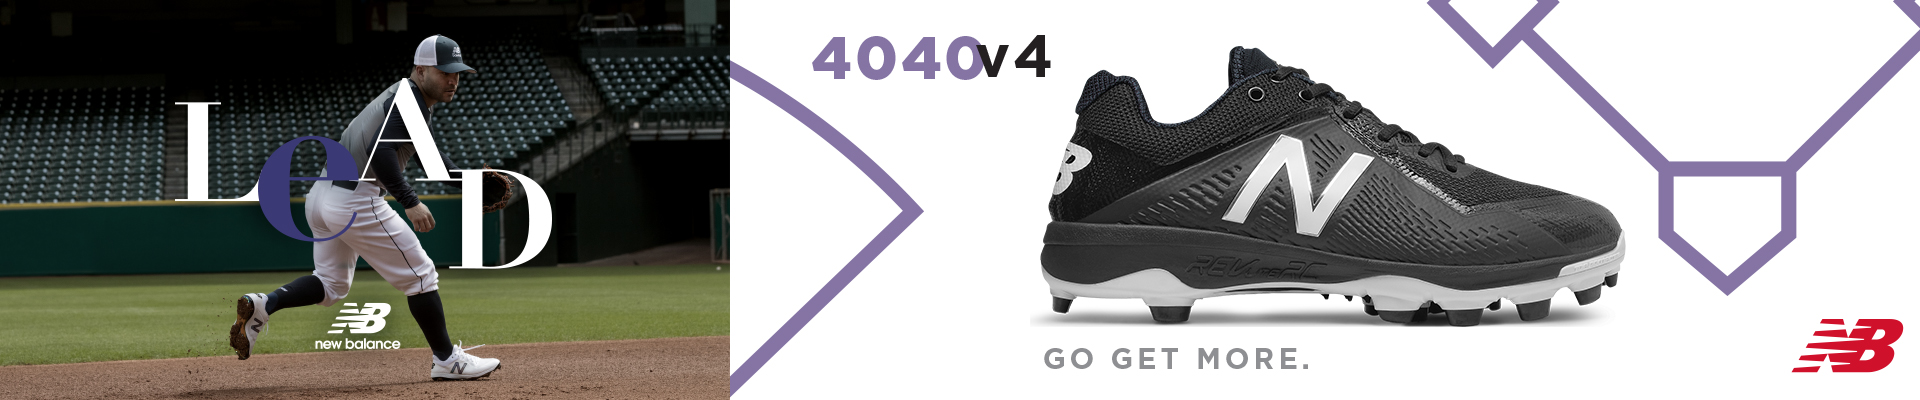 Find the New Balance 4040v4 baseball cleats available for sale at Source For Sports